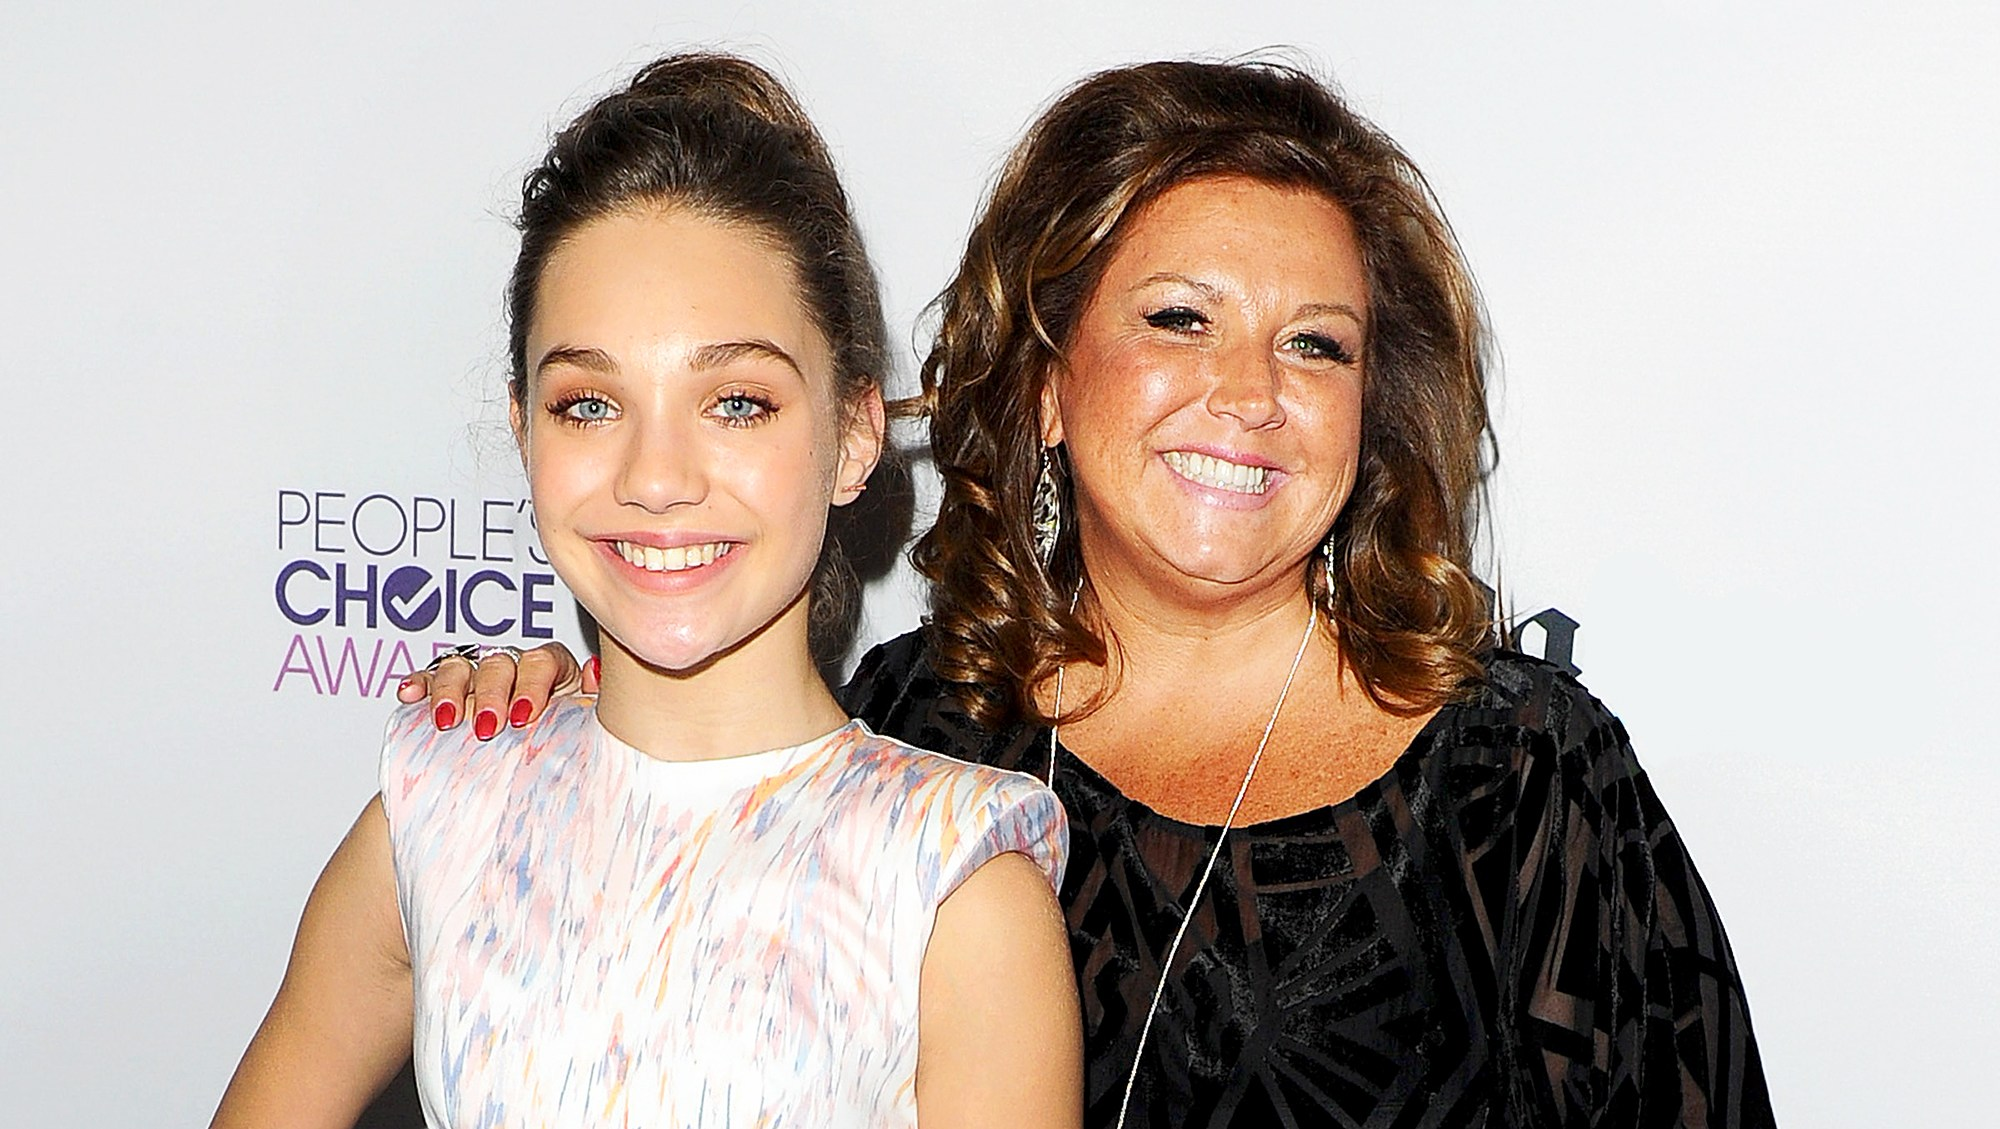 Maddie Ziegler and Abby Lee Miller attend after party for 2016 People's Choice Awards at Club Nokia in Los Angeles, California.